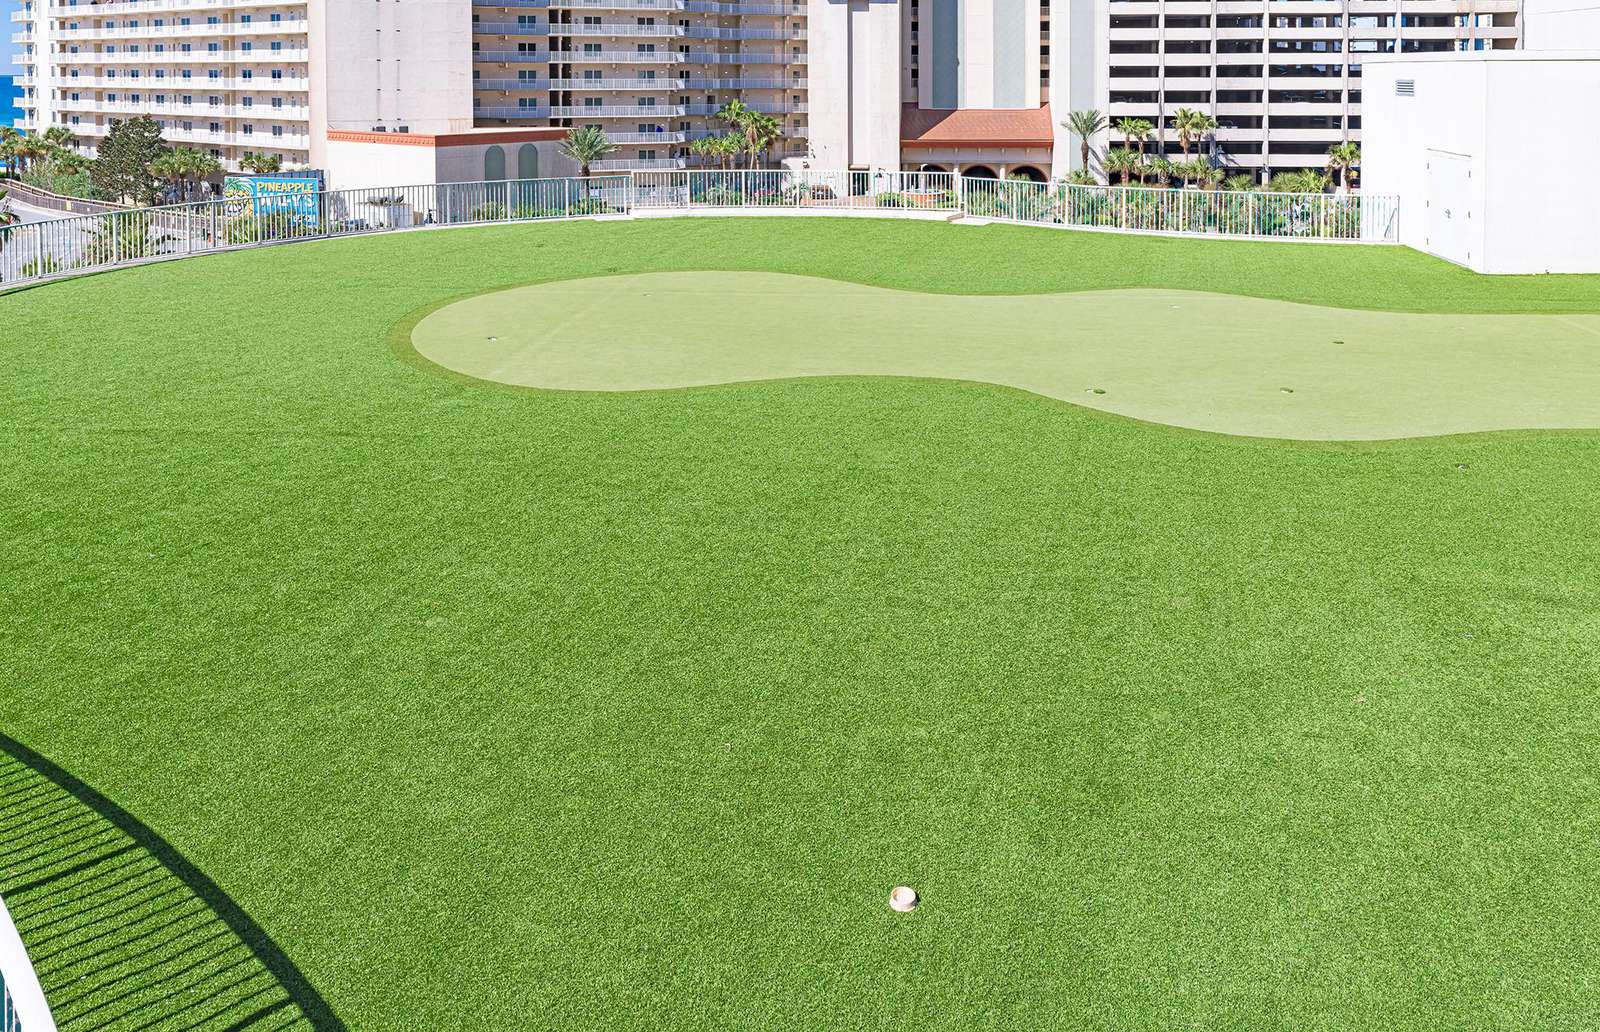 Get some practice on your putting skill!